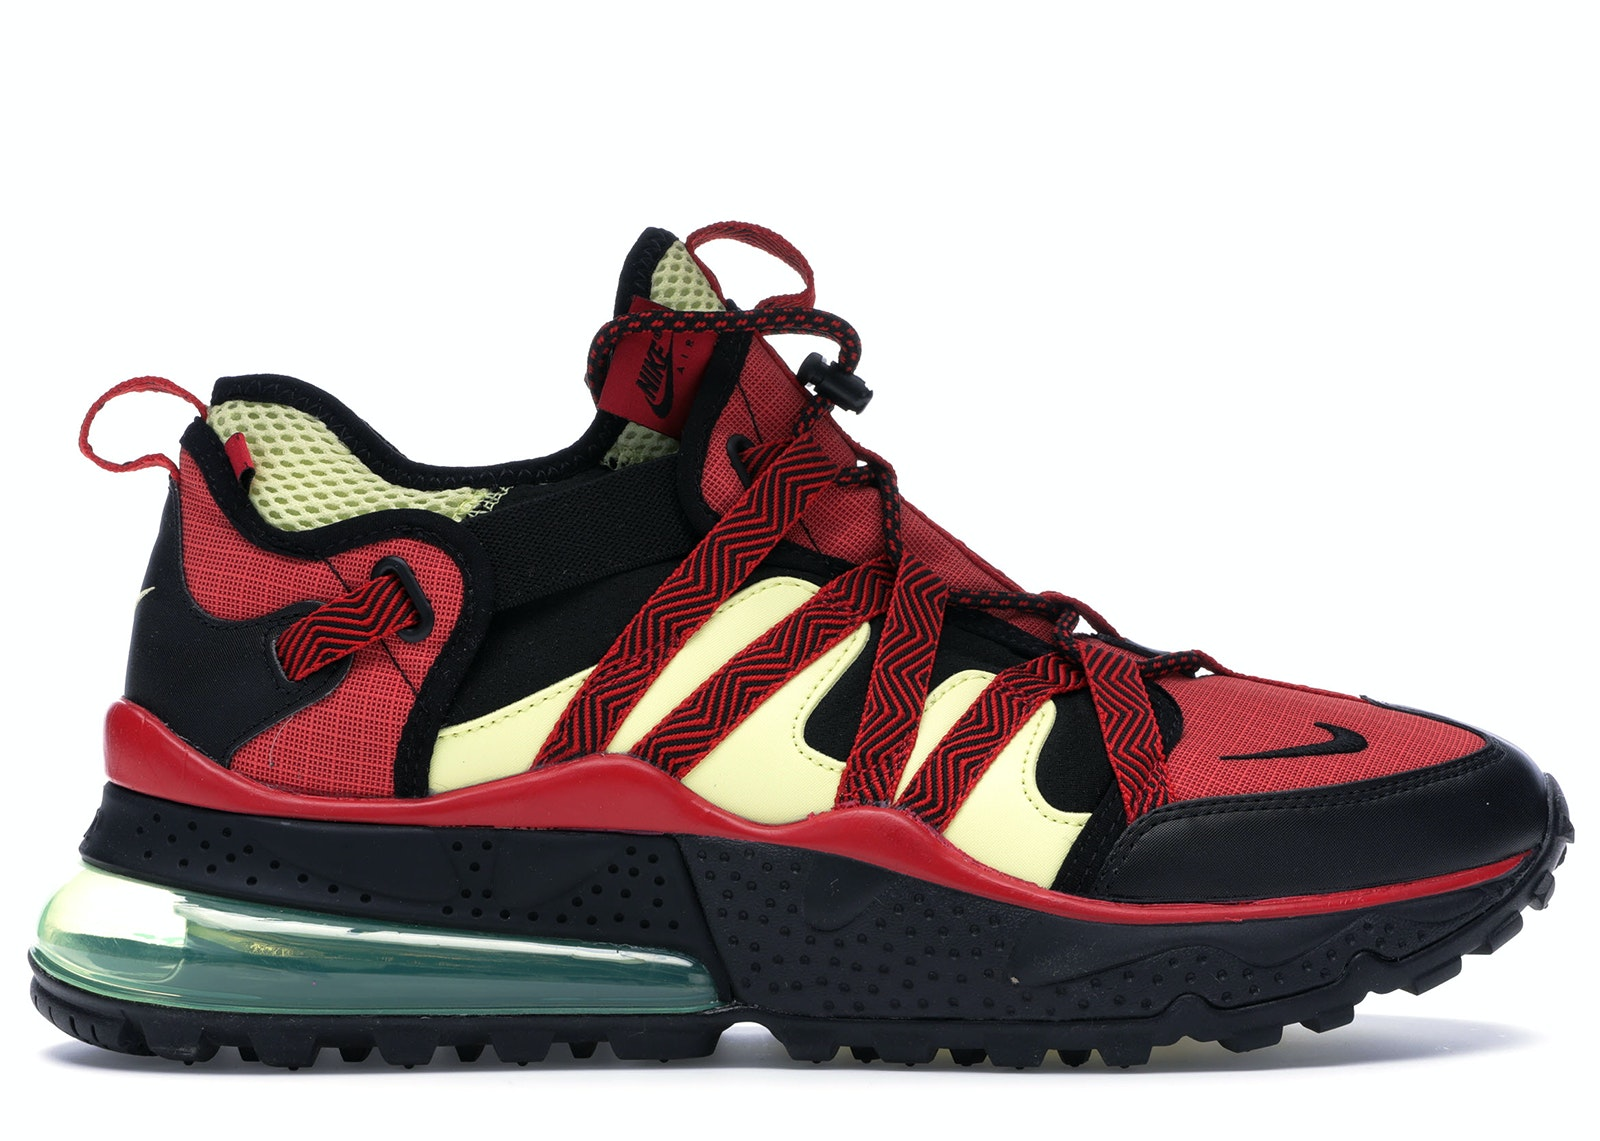 Air Max 270 Bowfin University Red Light Citron